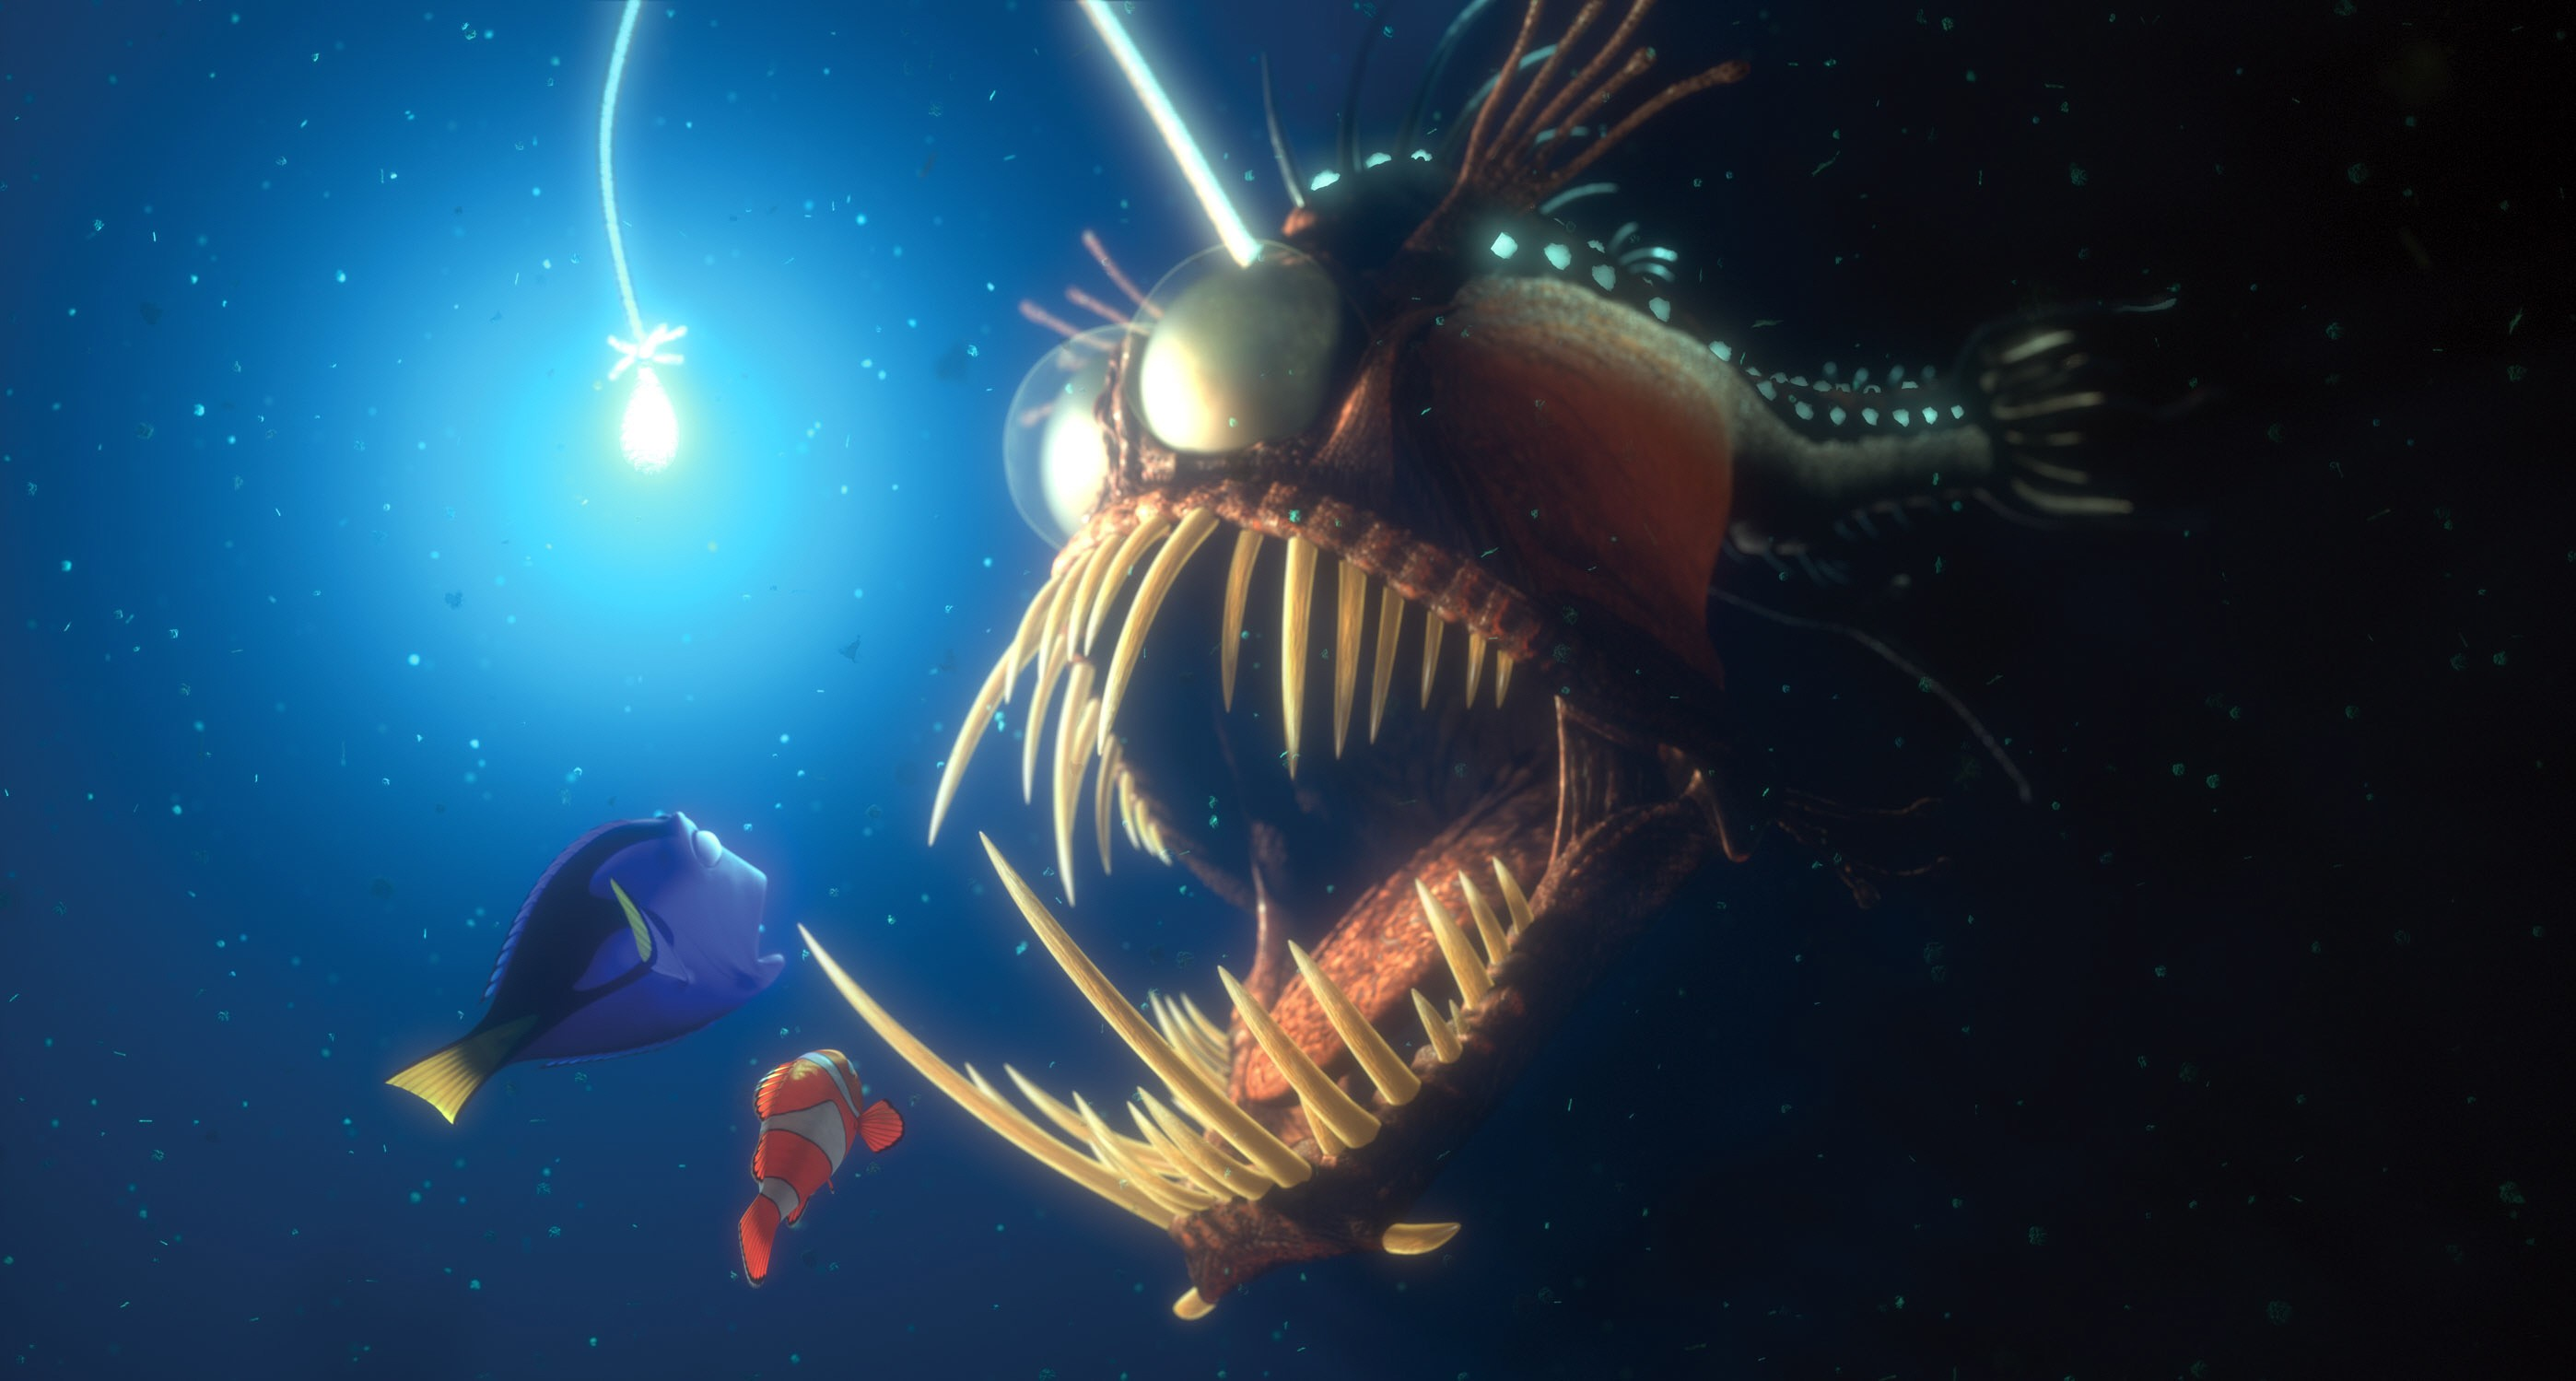 FINDING NEMO, Dory, Marlin, Angler fish, 2003, (c) Walt Disney/courtesy Everett Collection